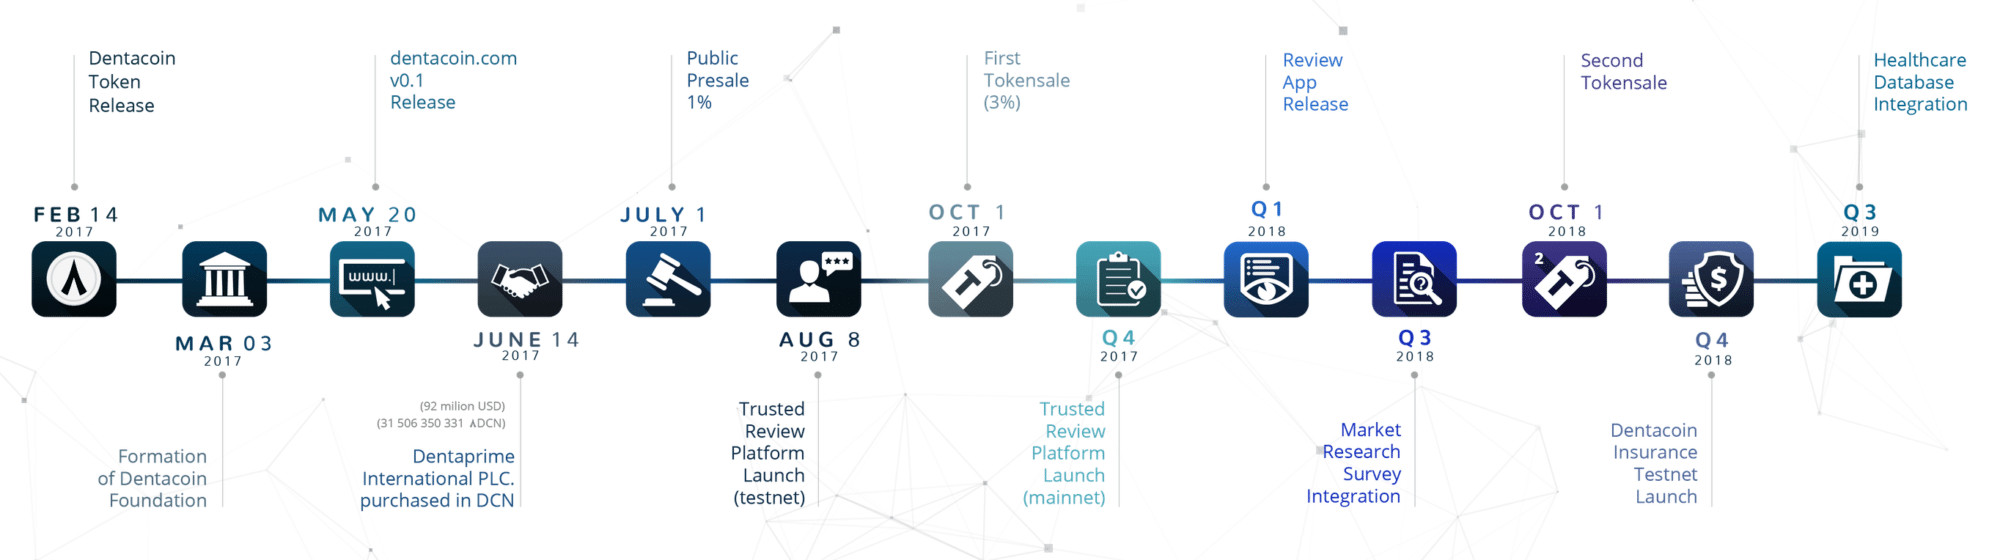 dentacoin-roadmap.png